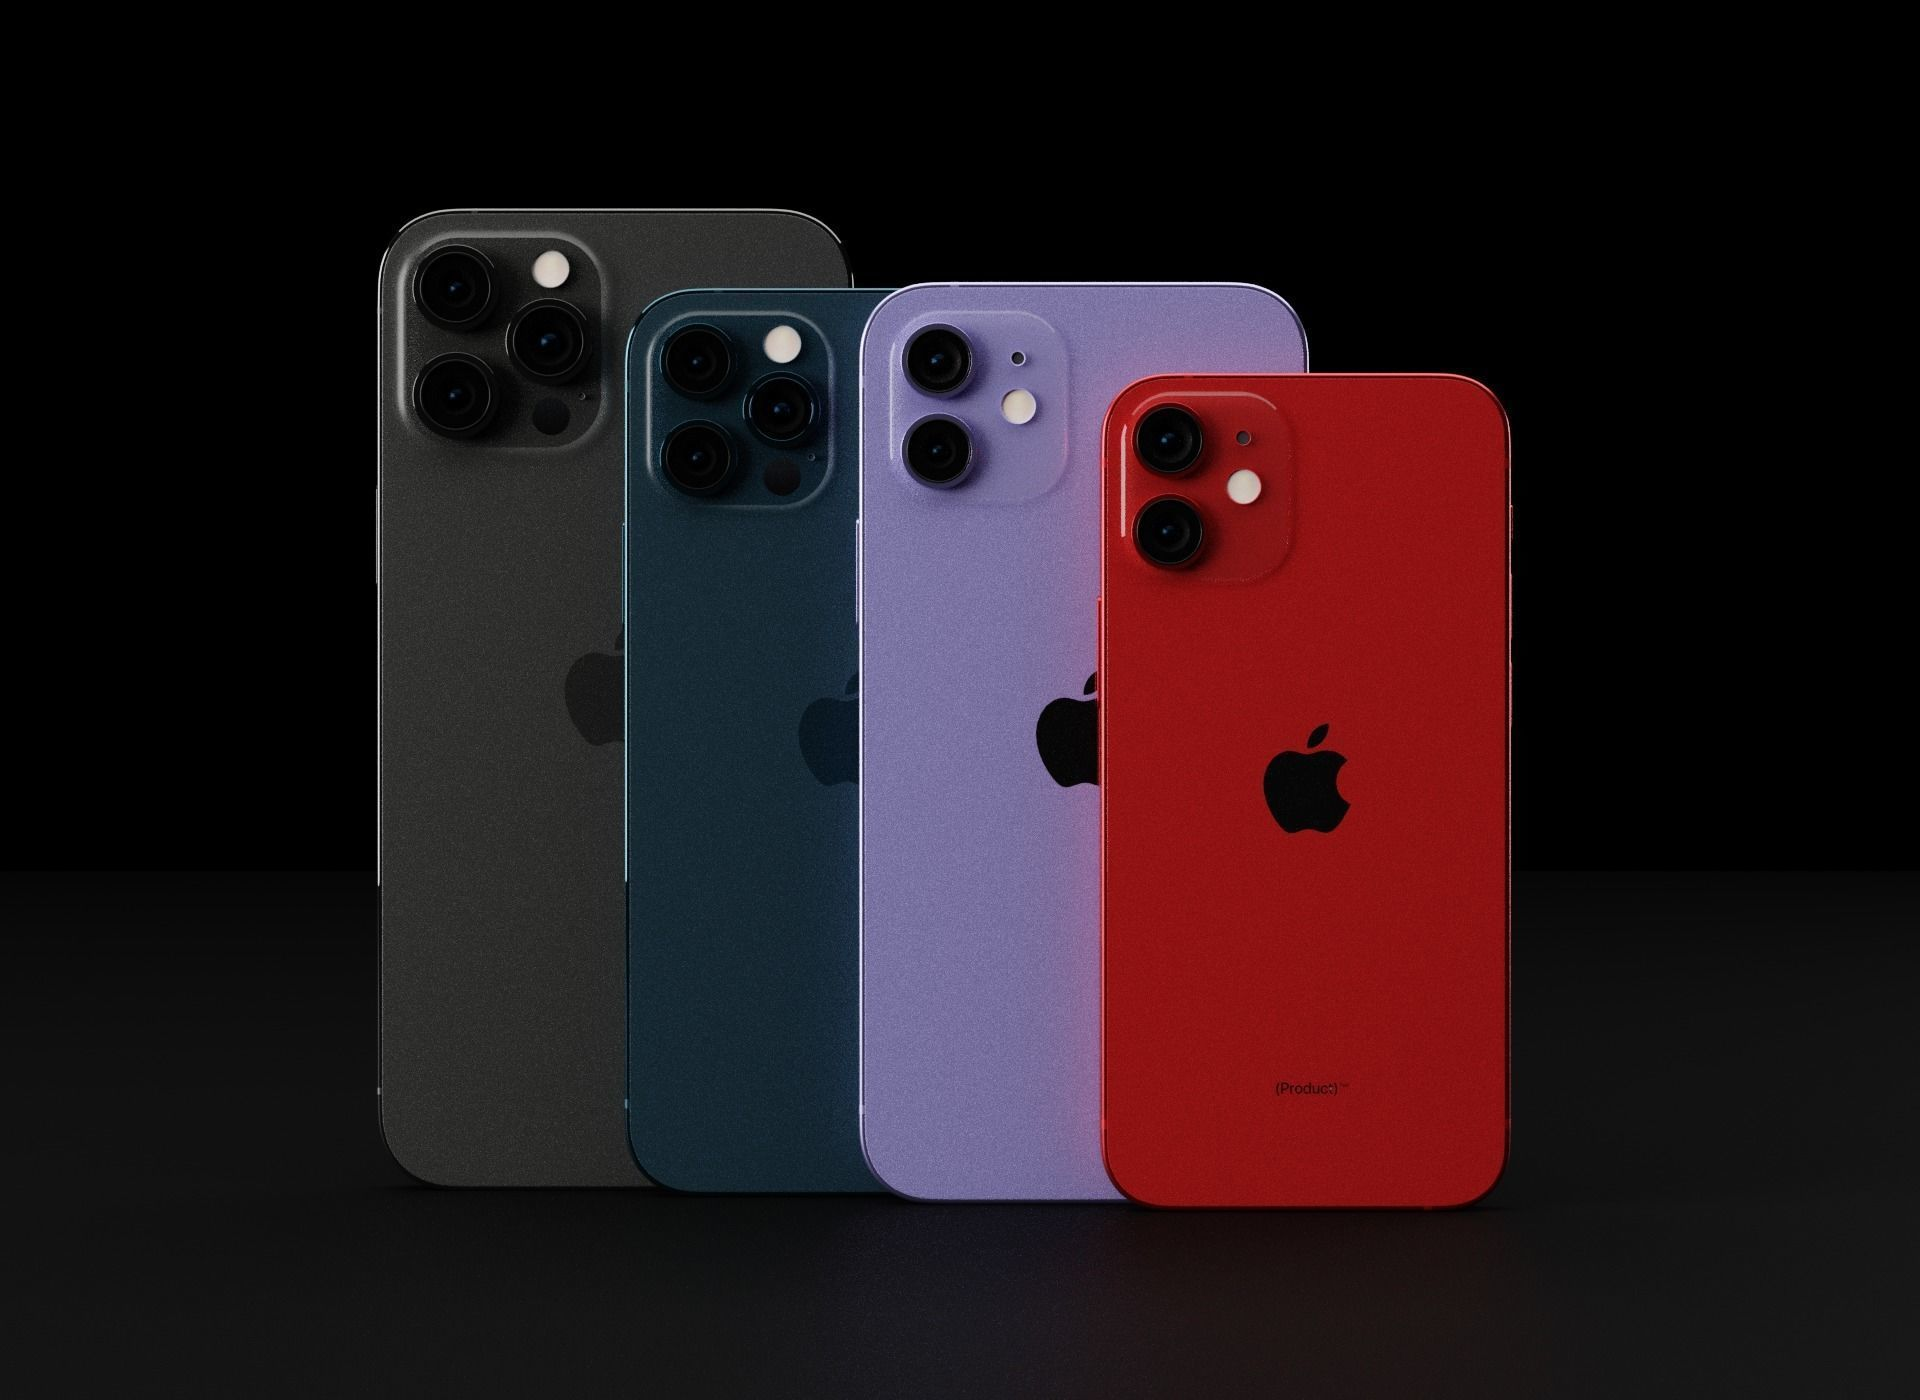 Apple iPhone 12 All Models in all Official Colors